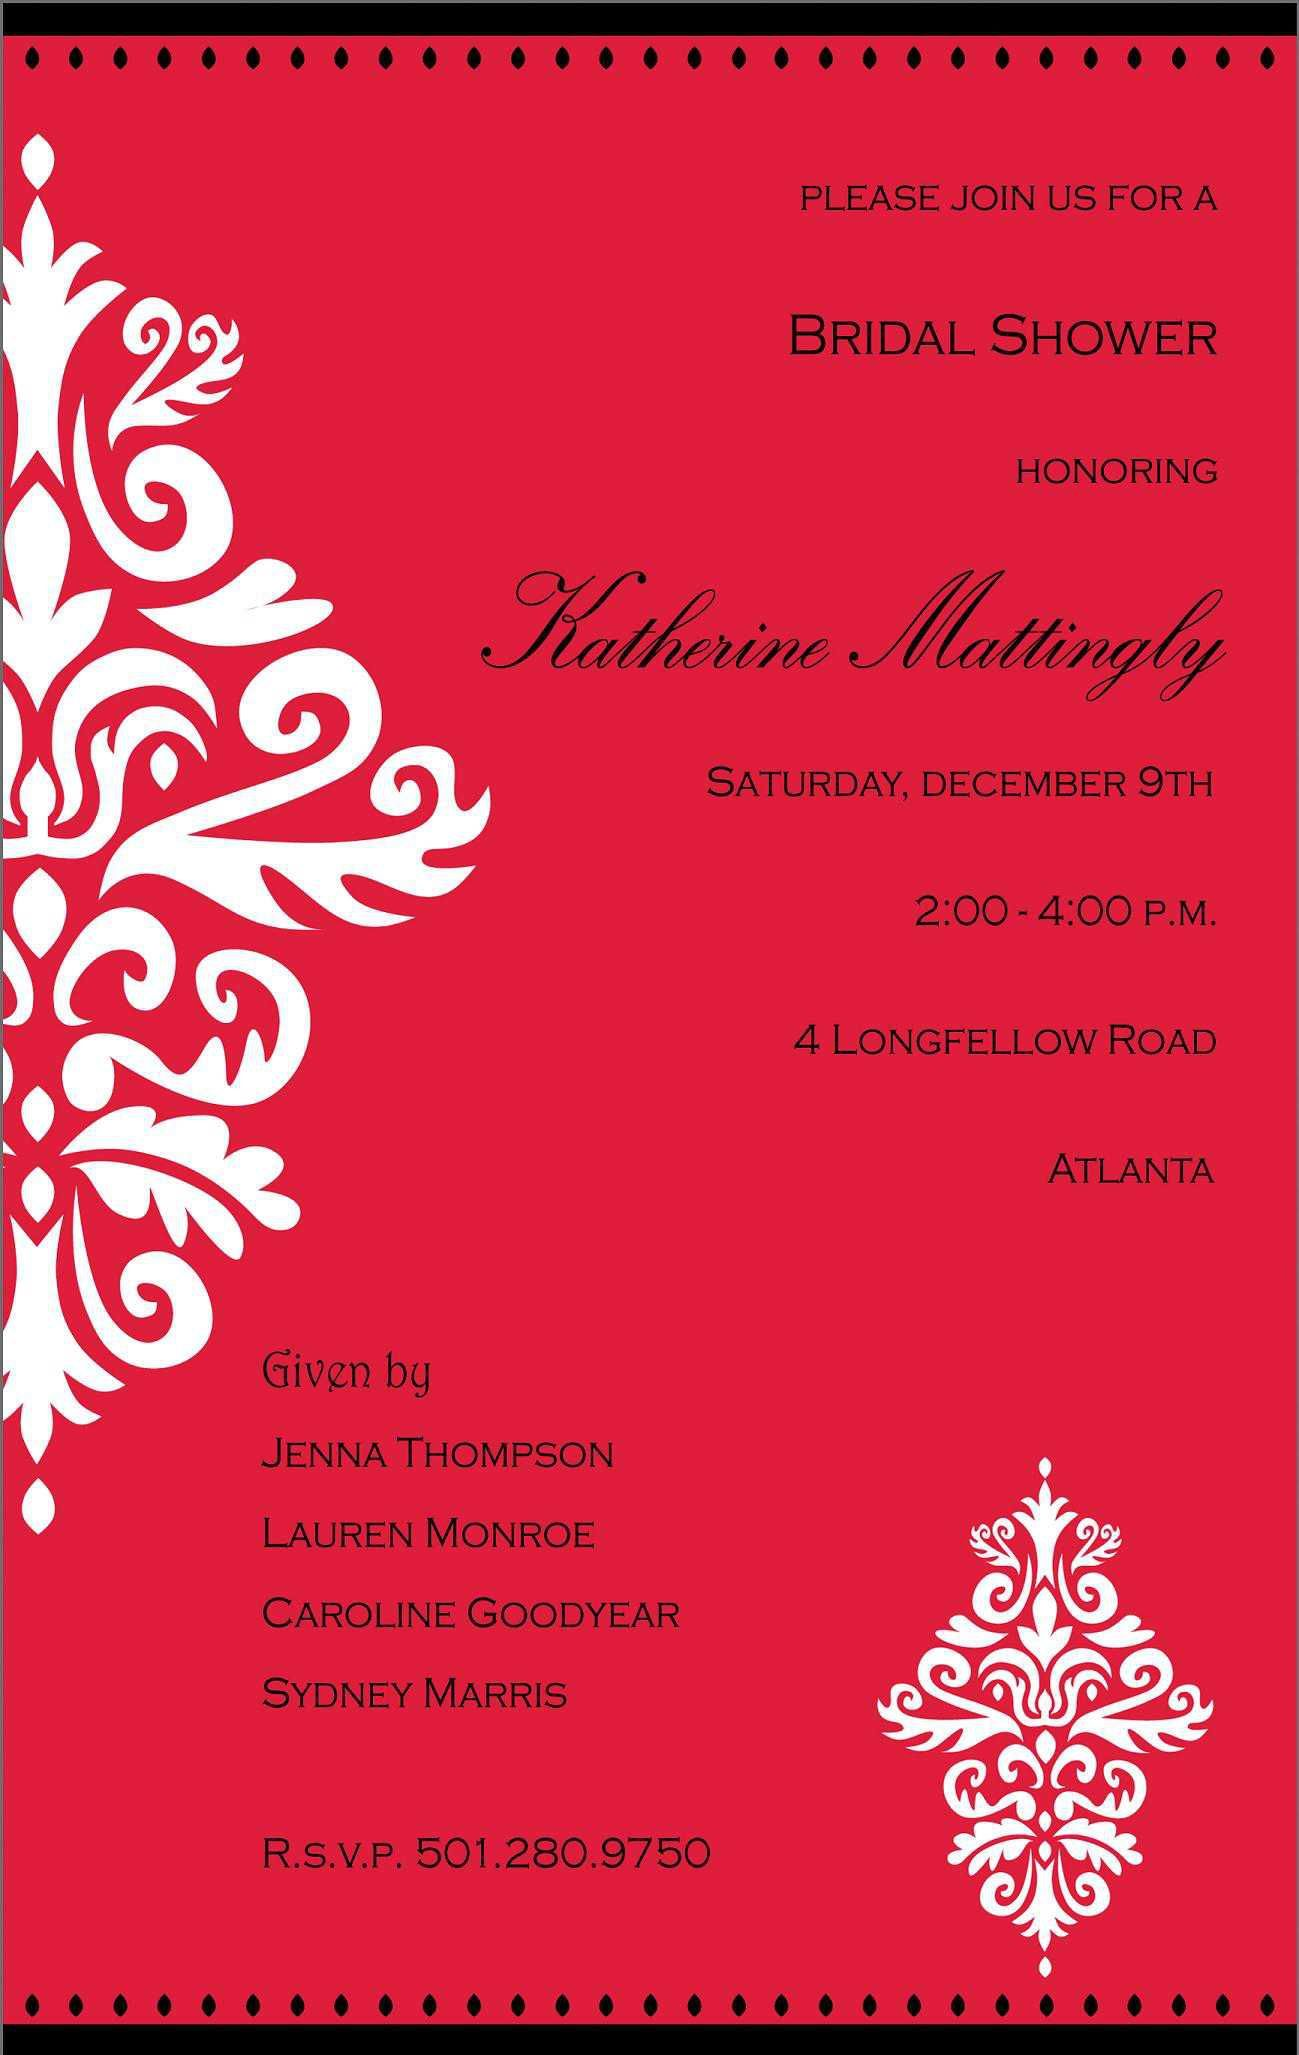 cultural event invitation cards birthday invitations template cultural event invitation cards